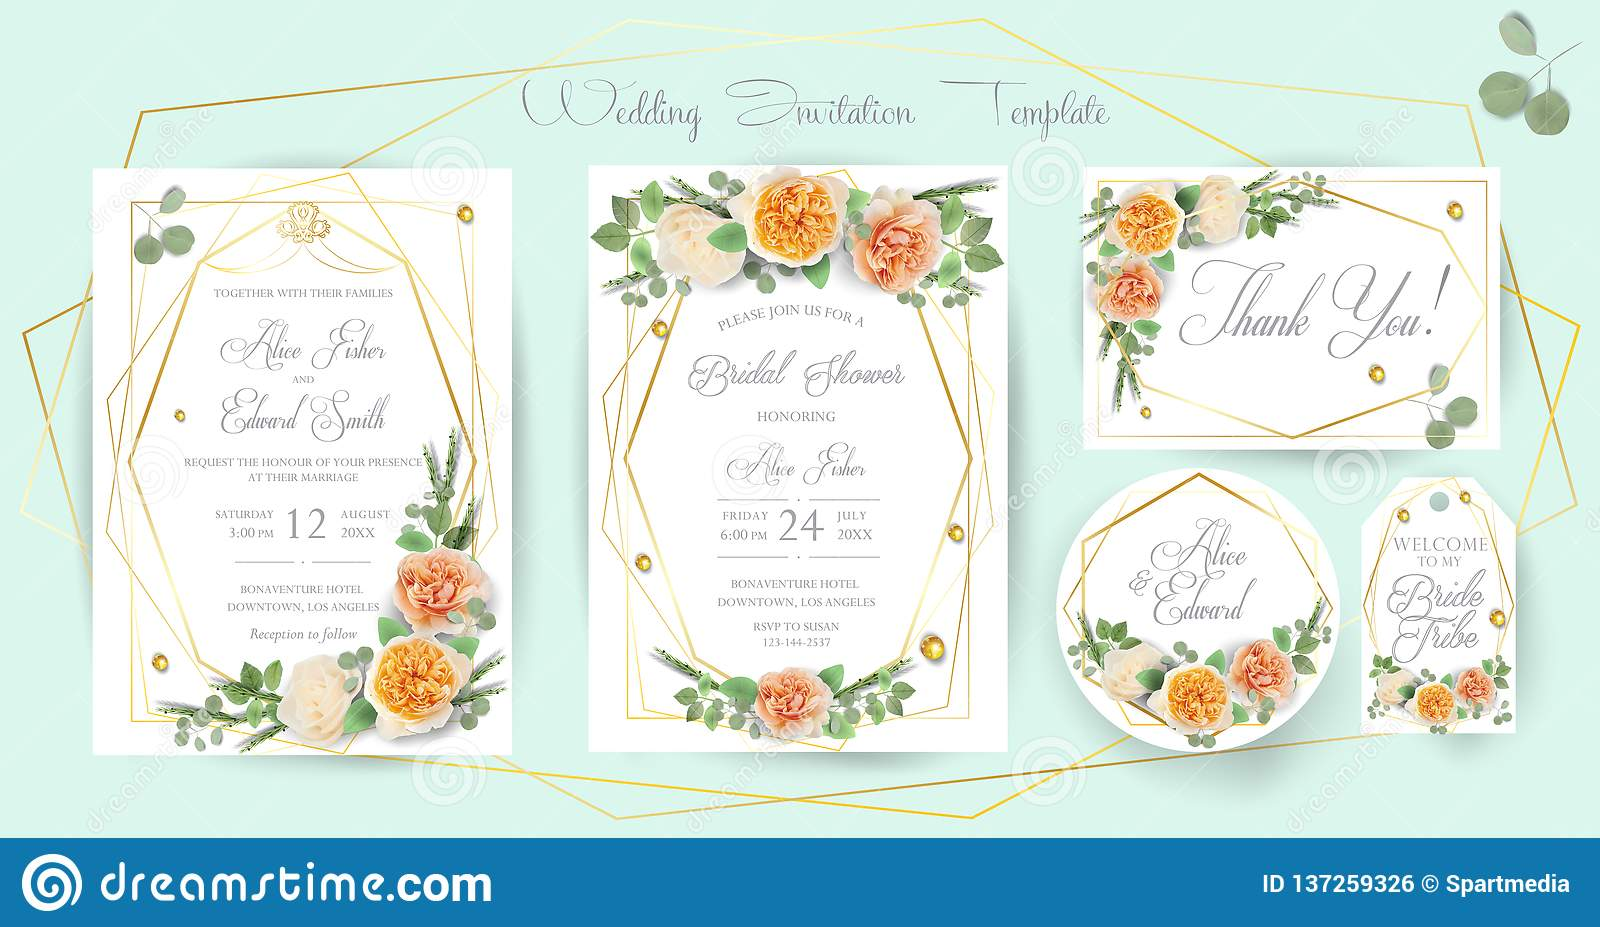 Floral Wedding Invitation, Thank You, Rsvp, Save The Date